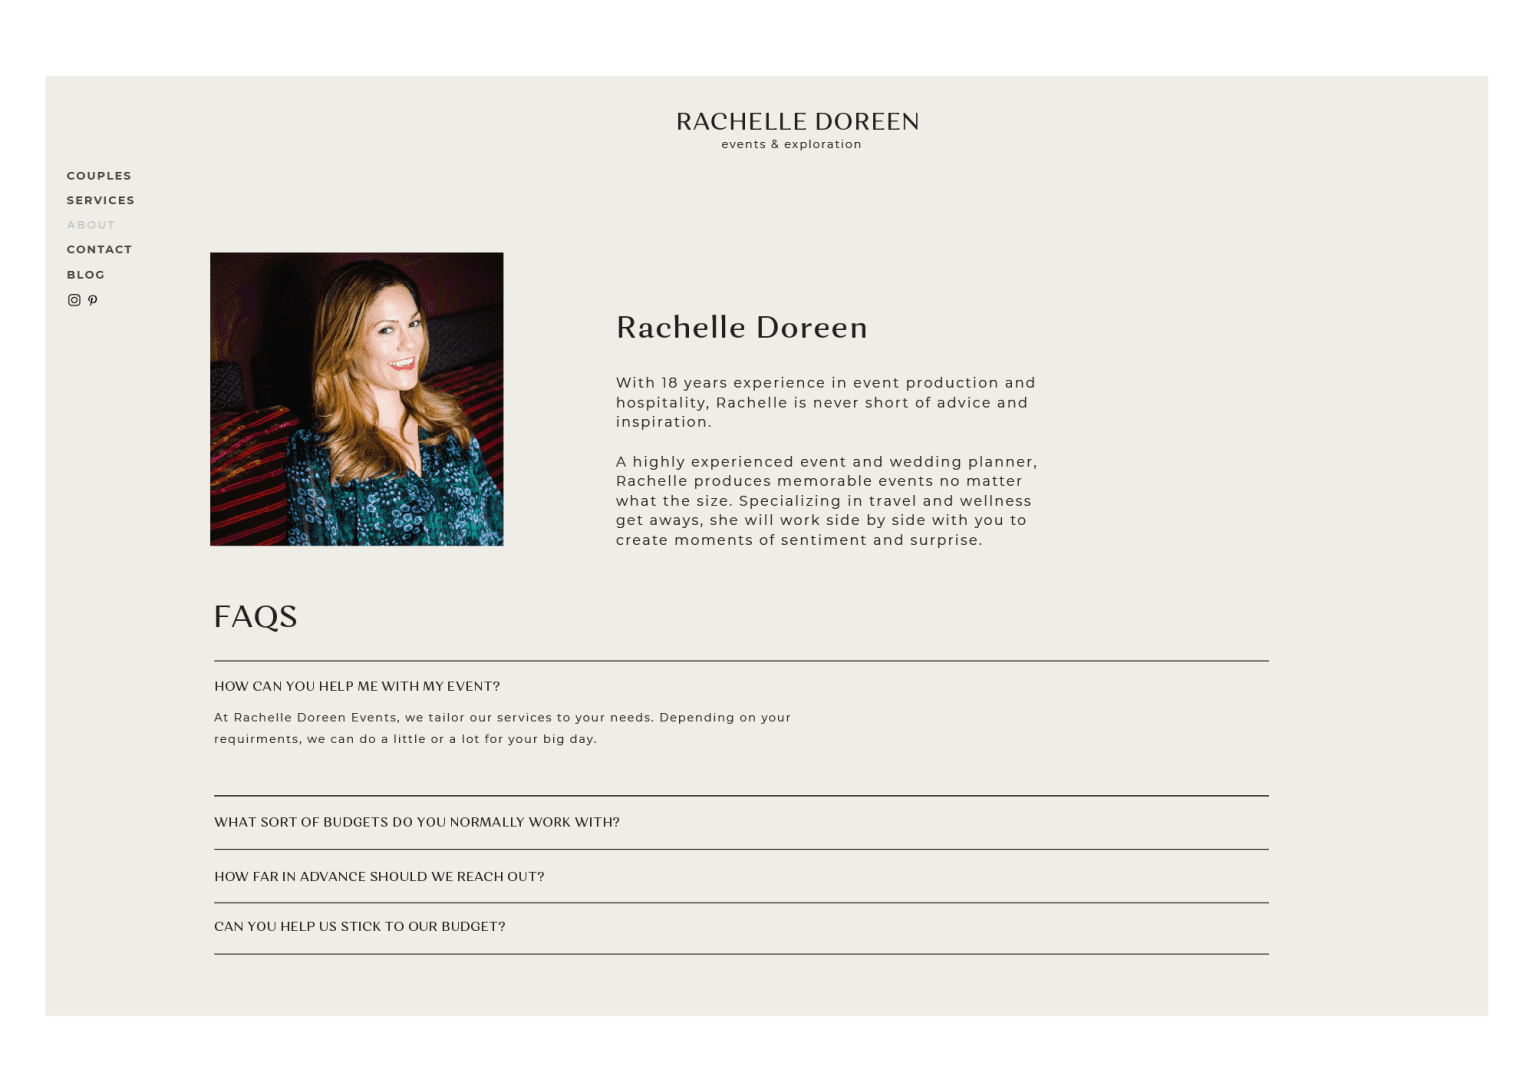 Rachelle Doreen Events